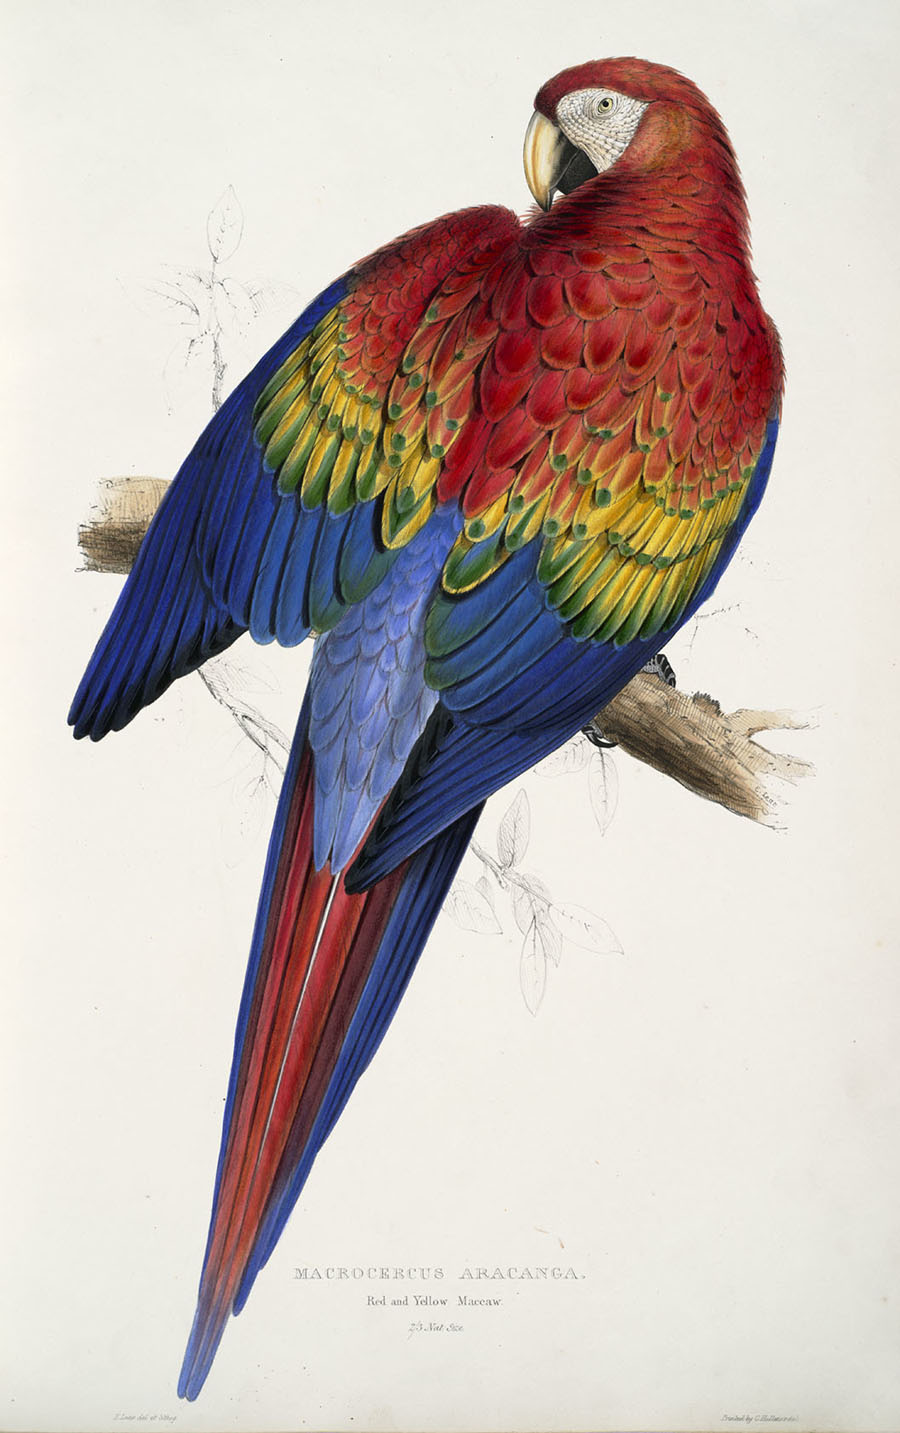 Macrocercus aracanga, Red and yellow maccaw